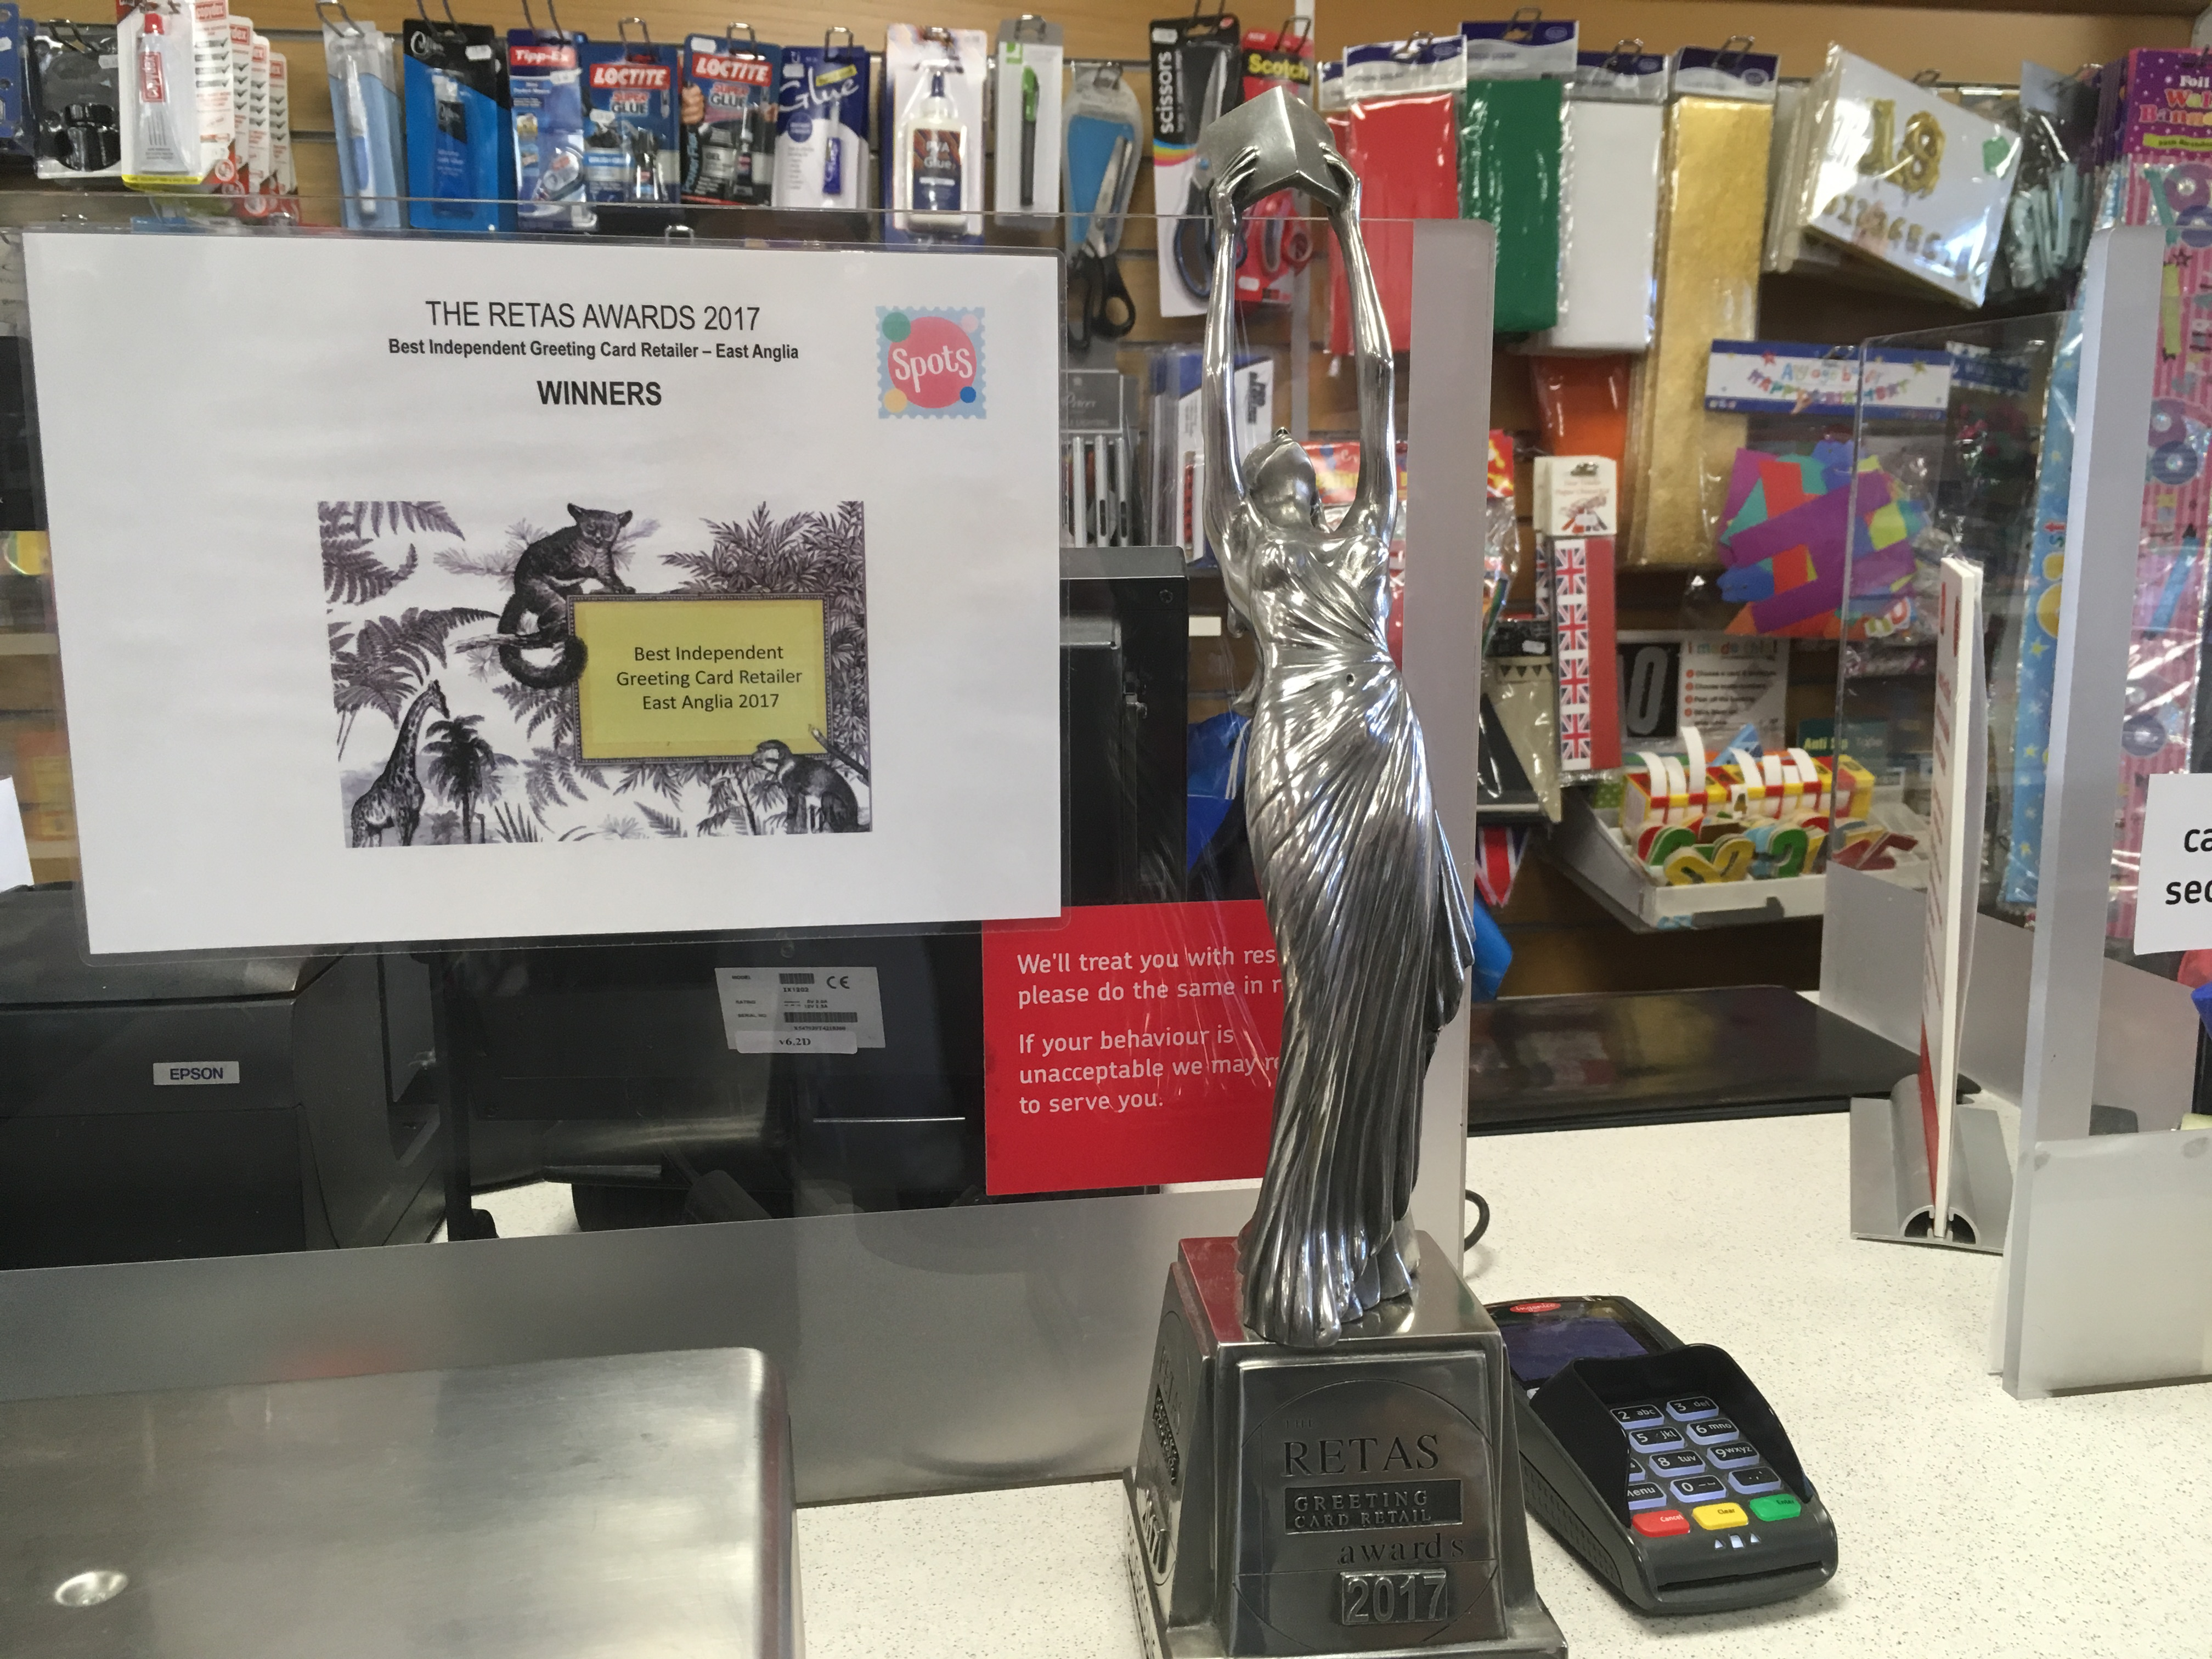 Above: Spots' Retas award has pride of place on the counter.